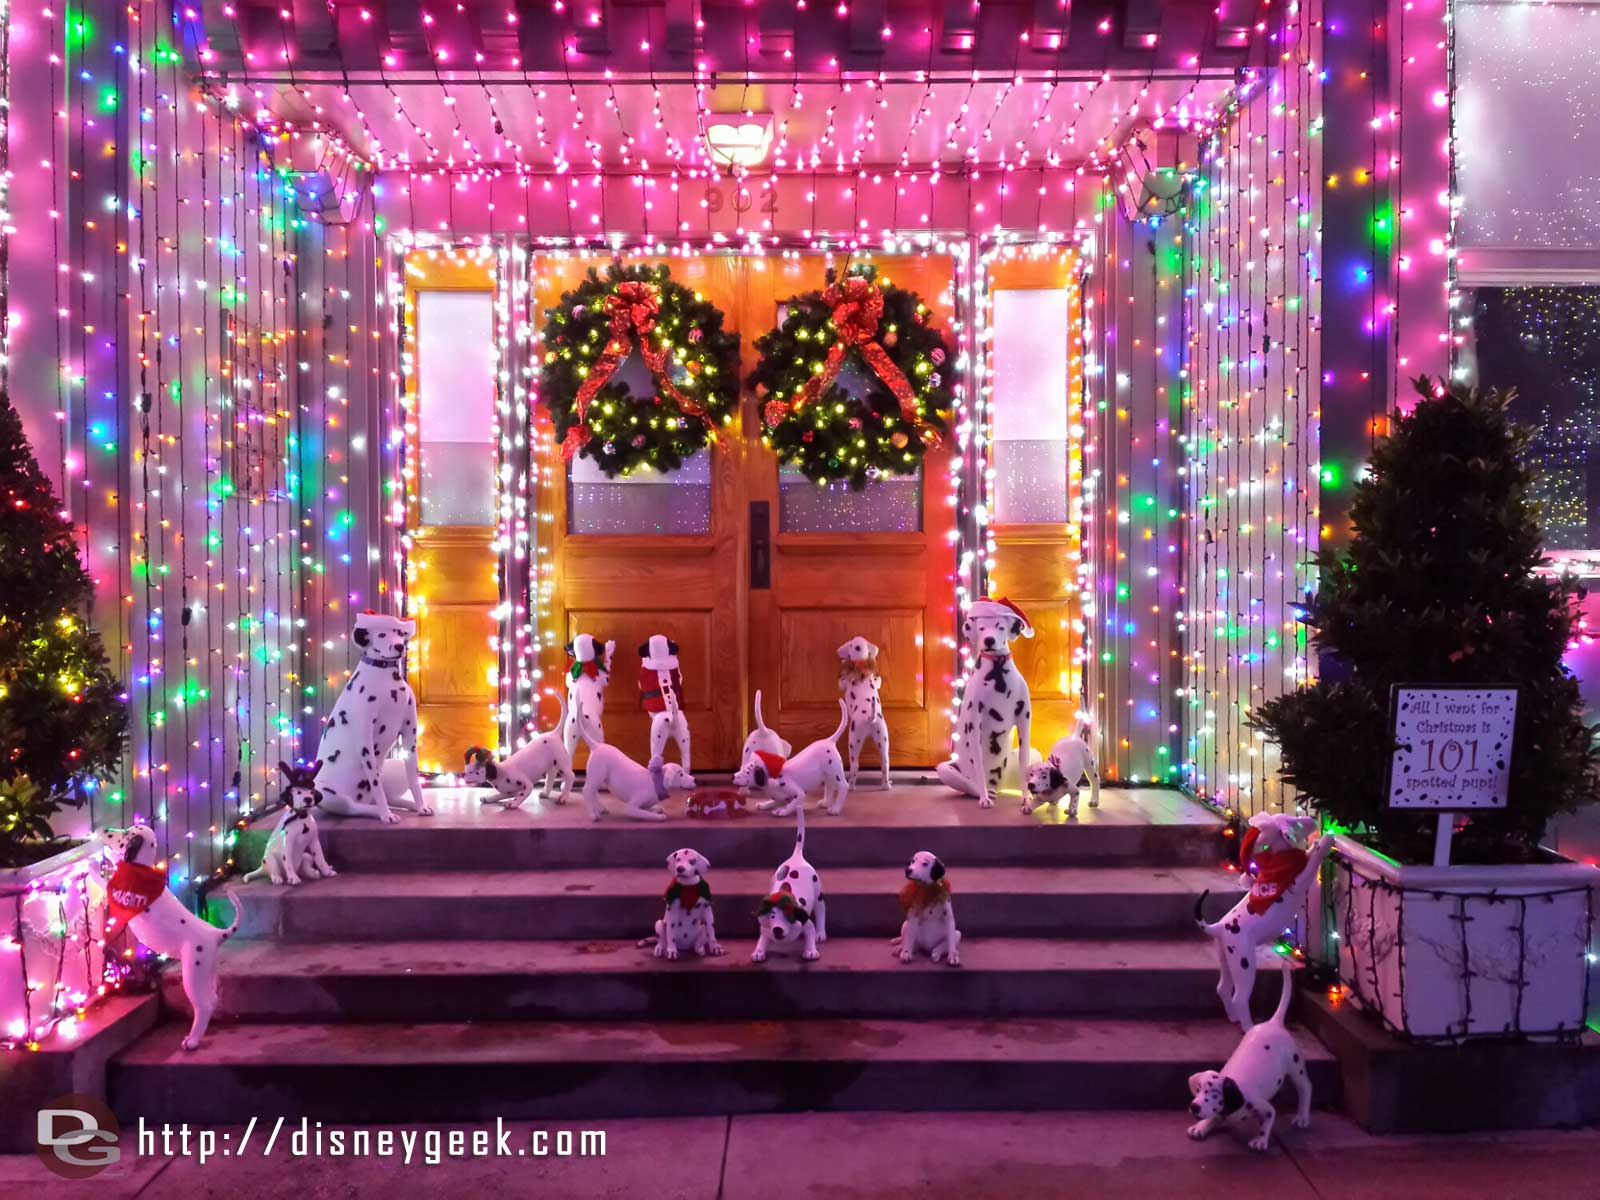 101 Dalmatian inspired doorway – Osborne Family Spectacle of Dancing Lights at Disney's Hollywood Studios